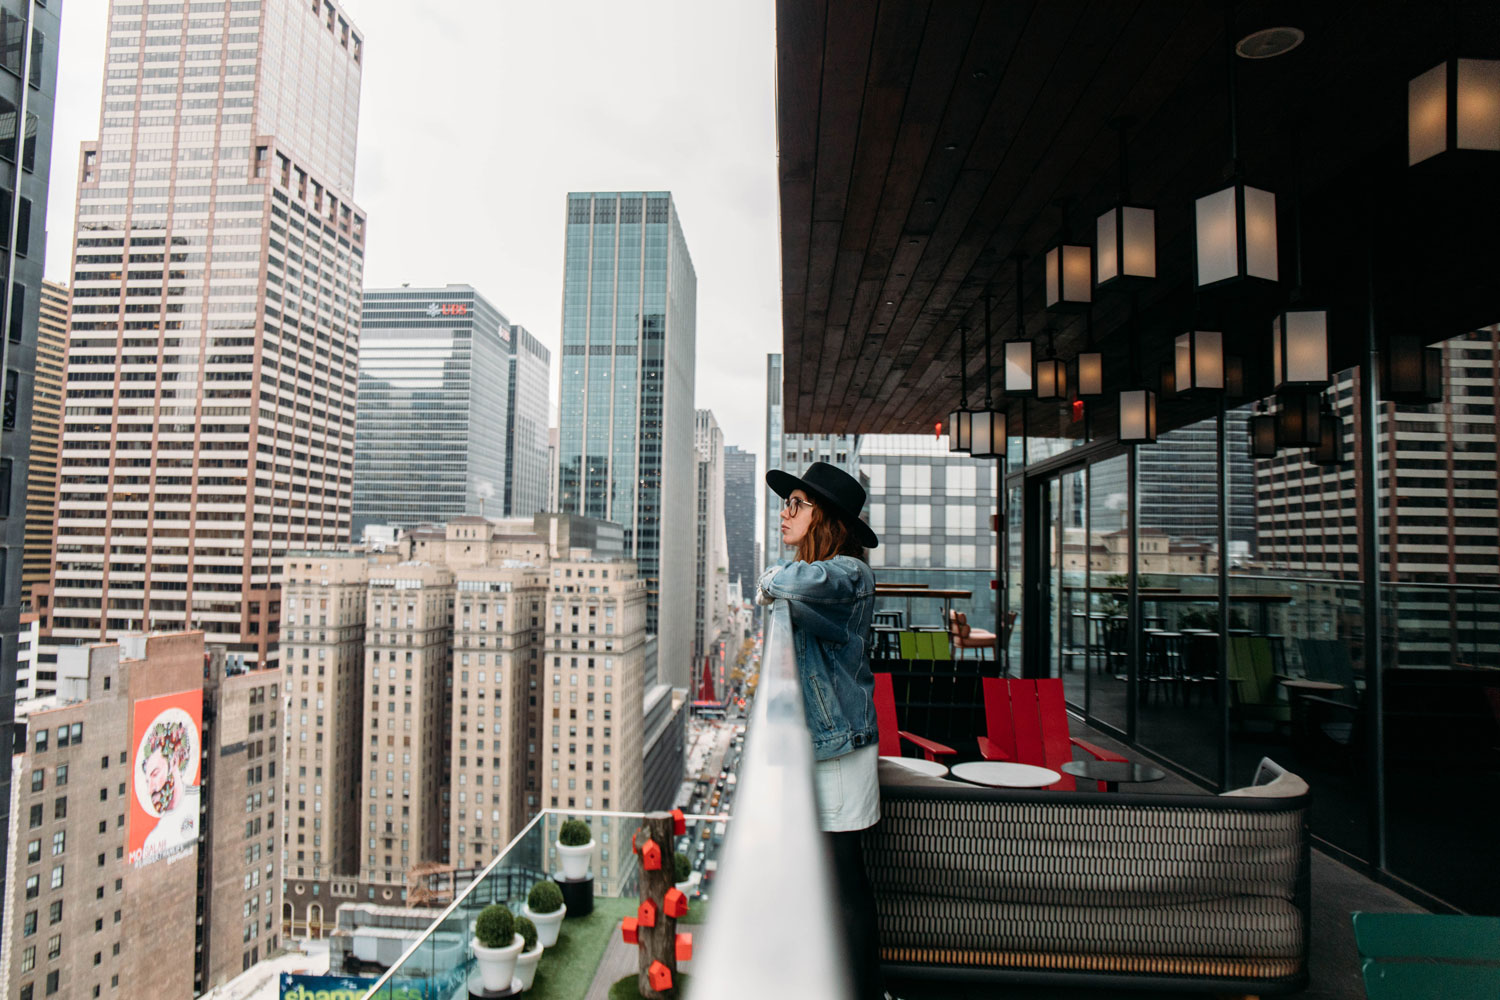 rooftop citizenm New York